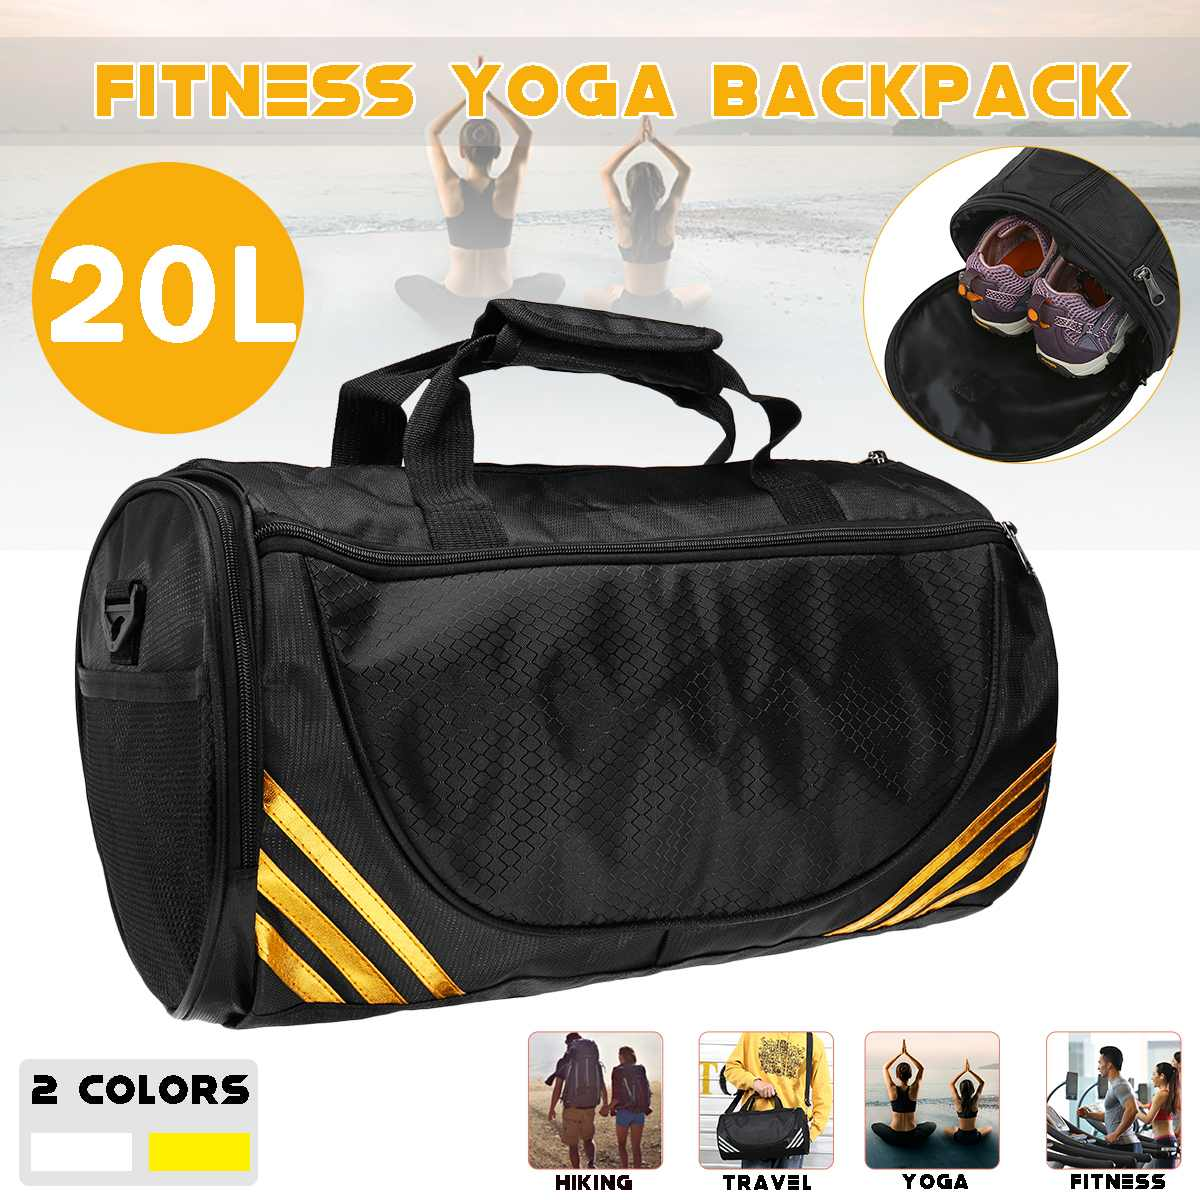 Polyester Gym Bag Sports Fitness Travel Yoga Shoulder Bag With Separated Shoes Compartment White Gold Resist Wear 45x25x24cm